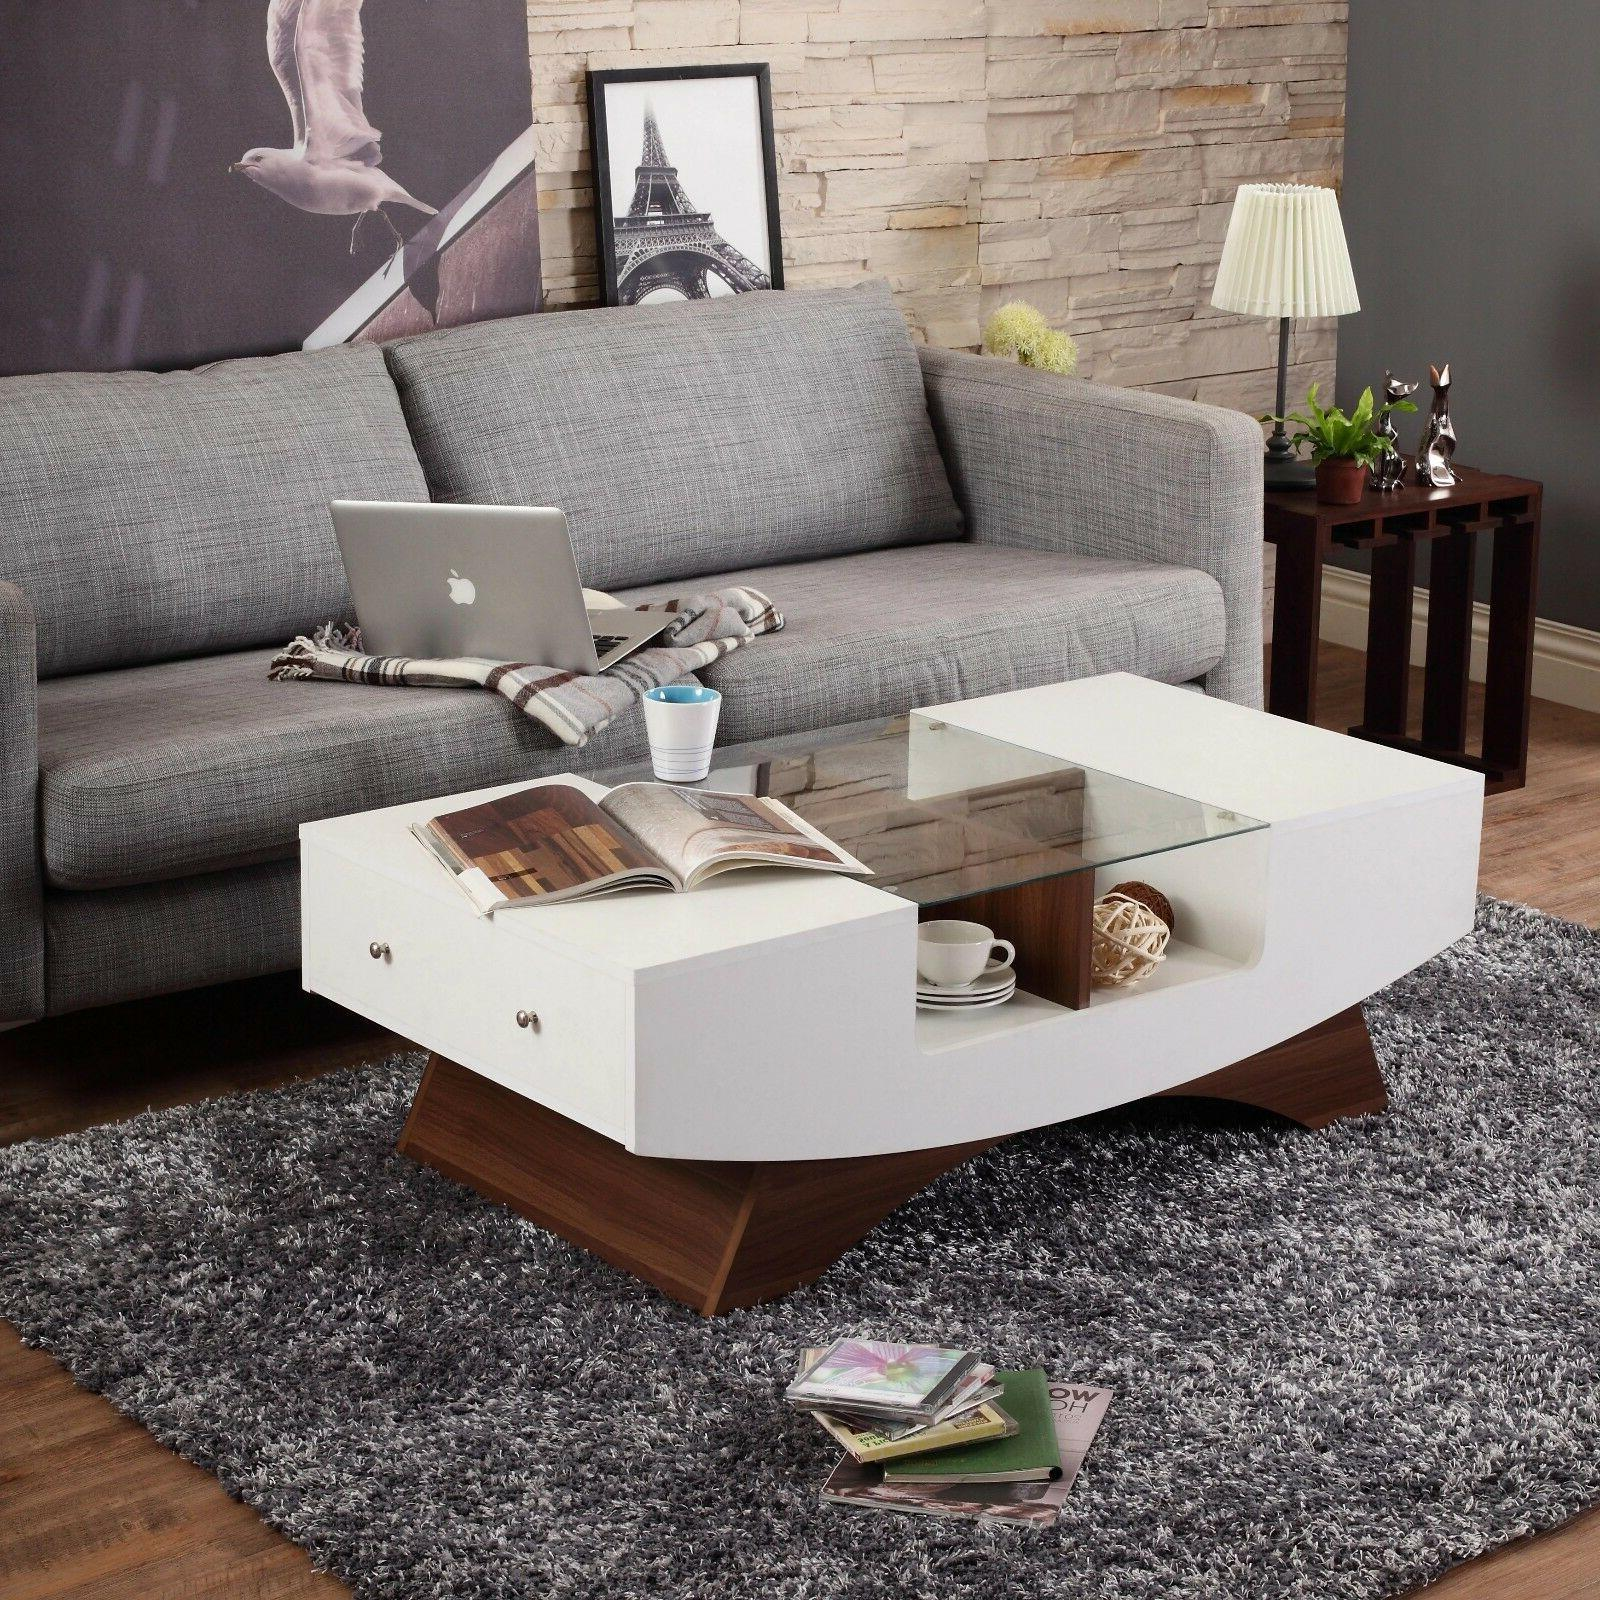 Coffee Table Glass 2 Drawer White Storage Console Living Roo